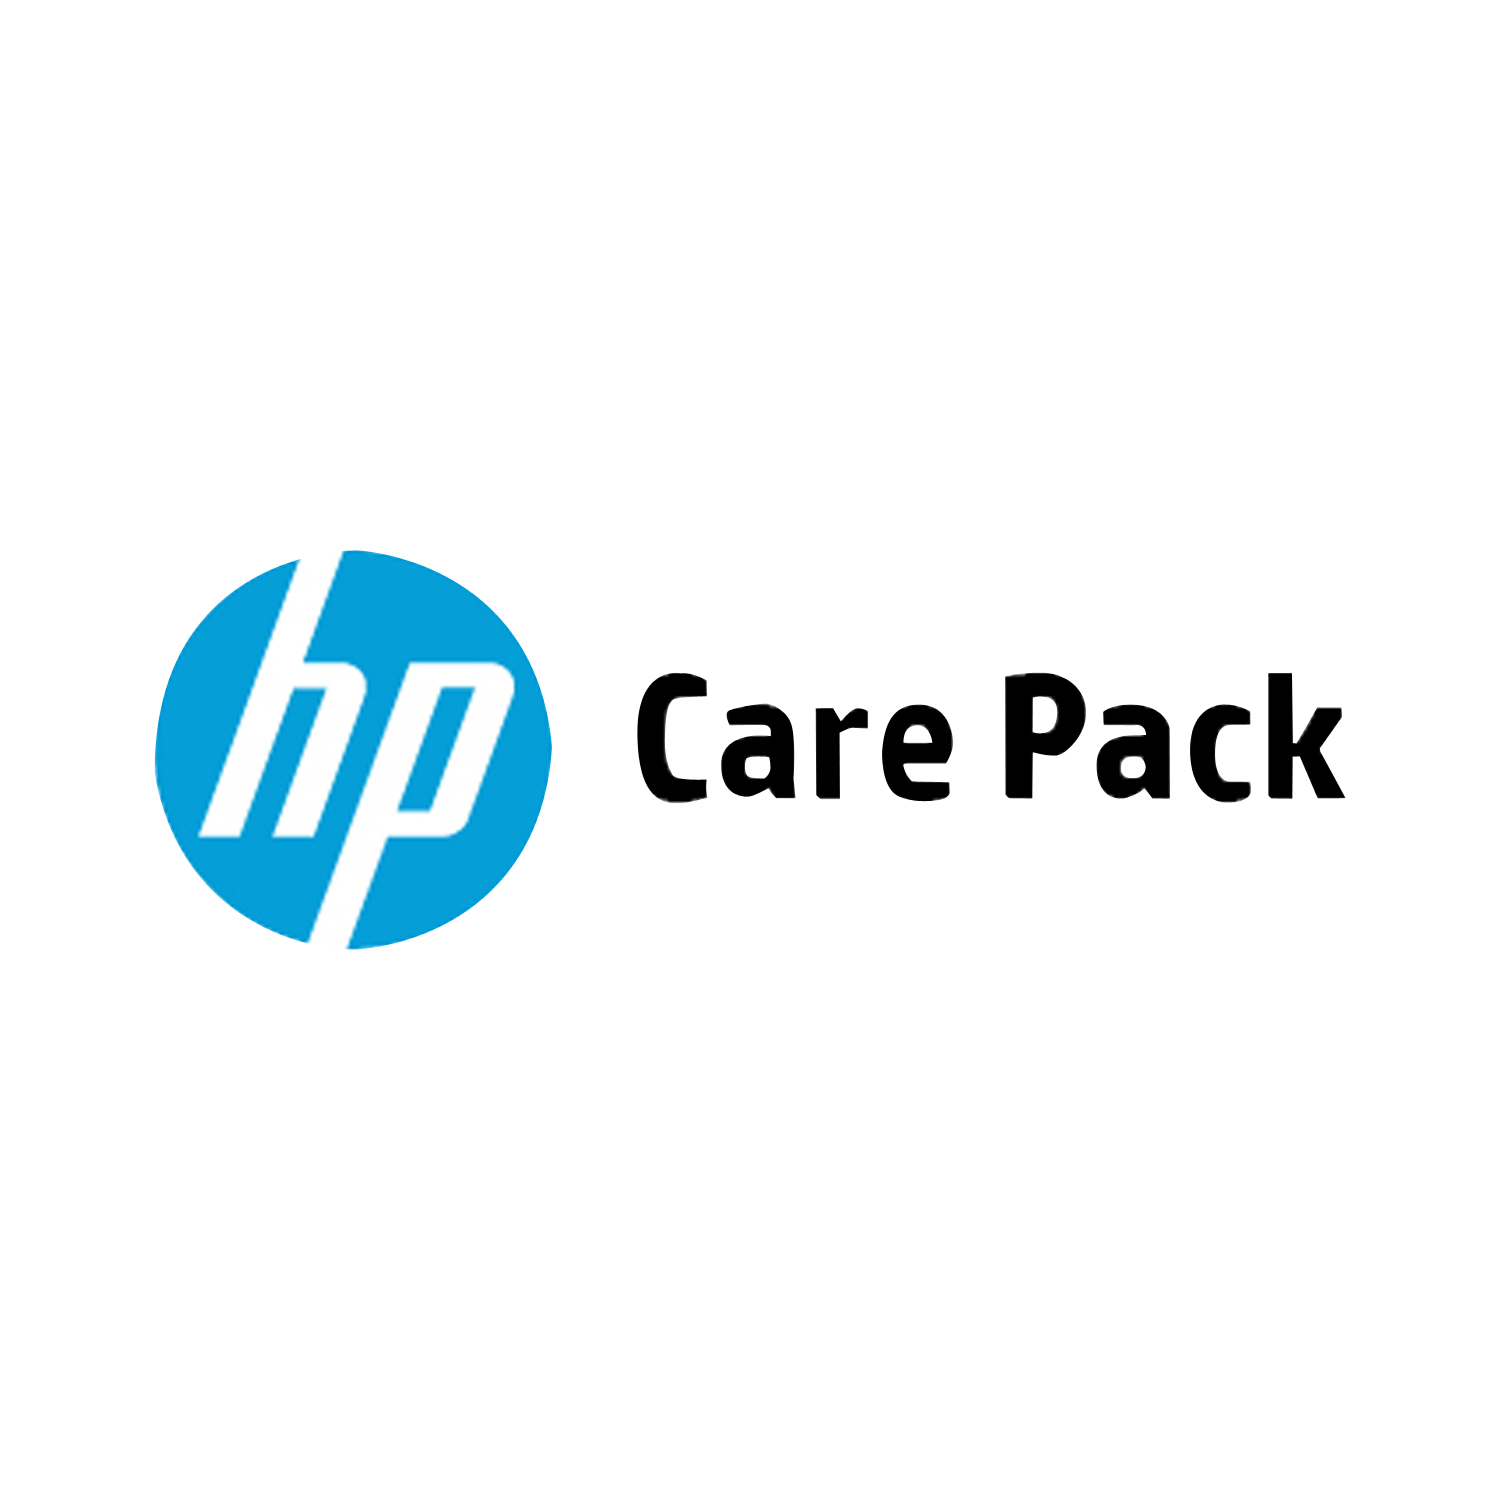 "HP Carepack Medium LCD Monitors 17"" - 19"" 3/3/3 Warranty, 4 Years Of Hardware Support. Next Business Day Onsite Response. 8am-5pm, Standard Business Days Excluding HP Holidays. U7934E - C2000"